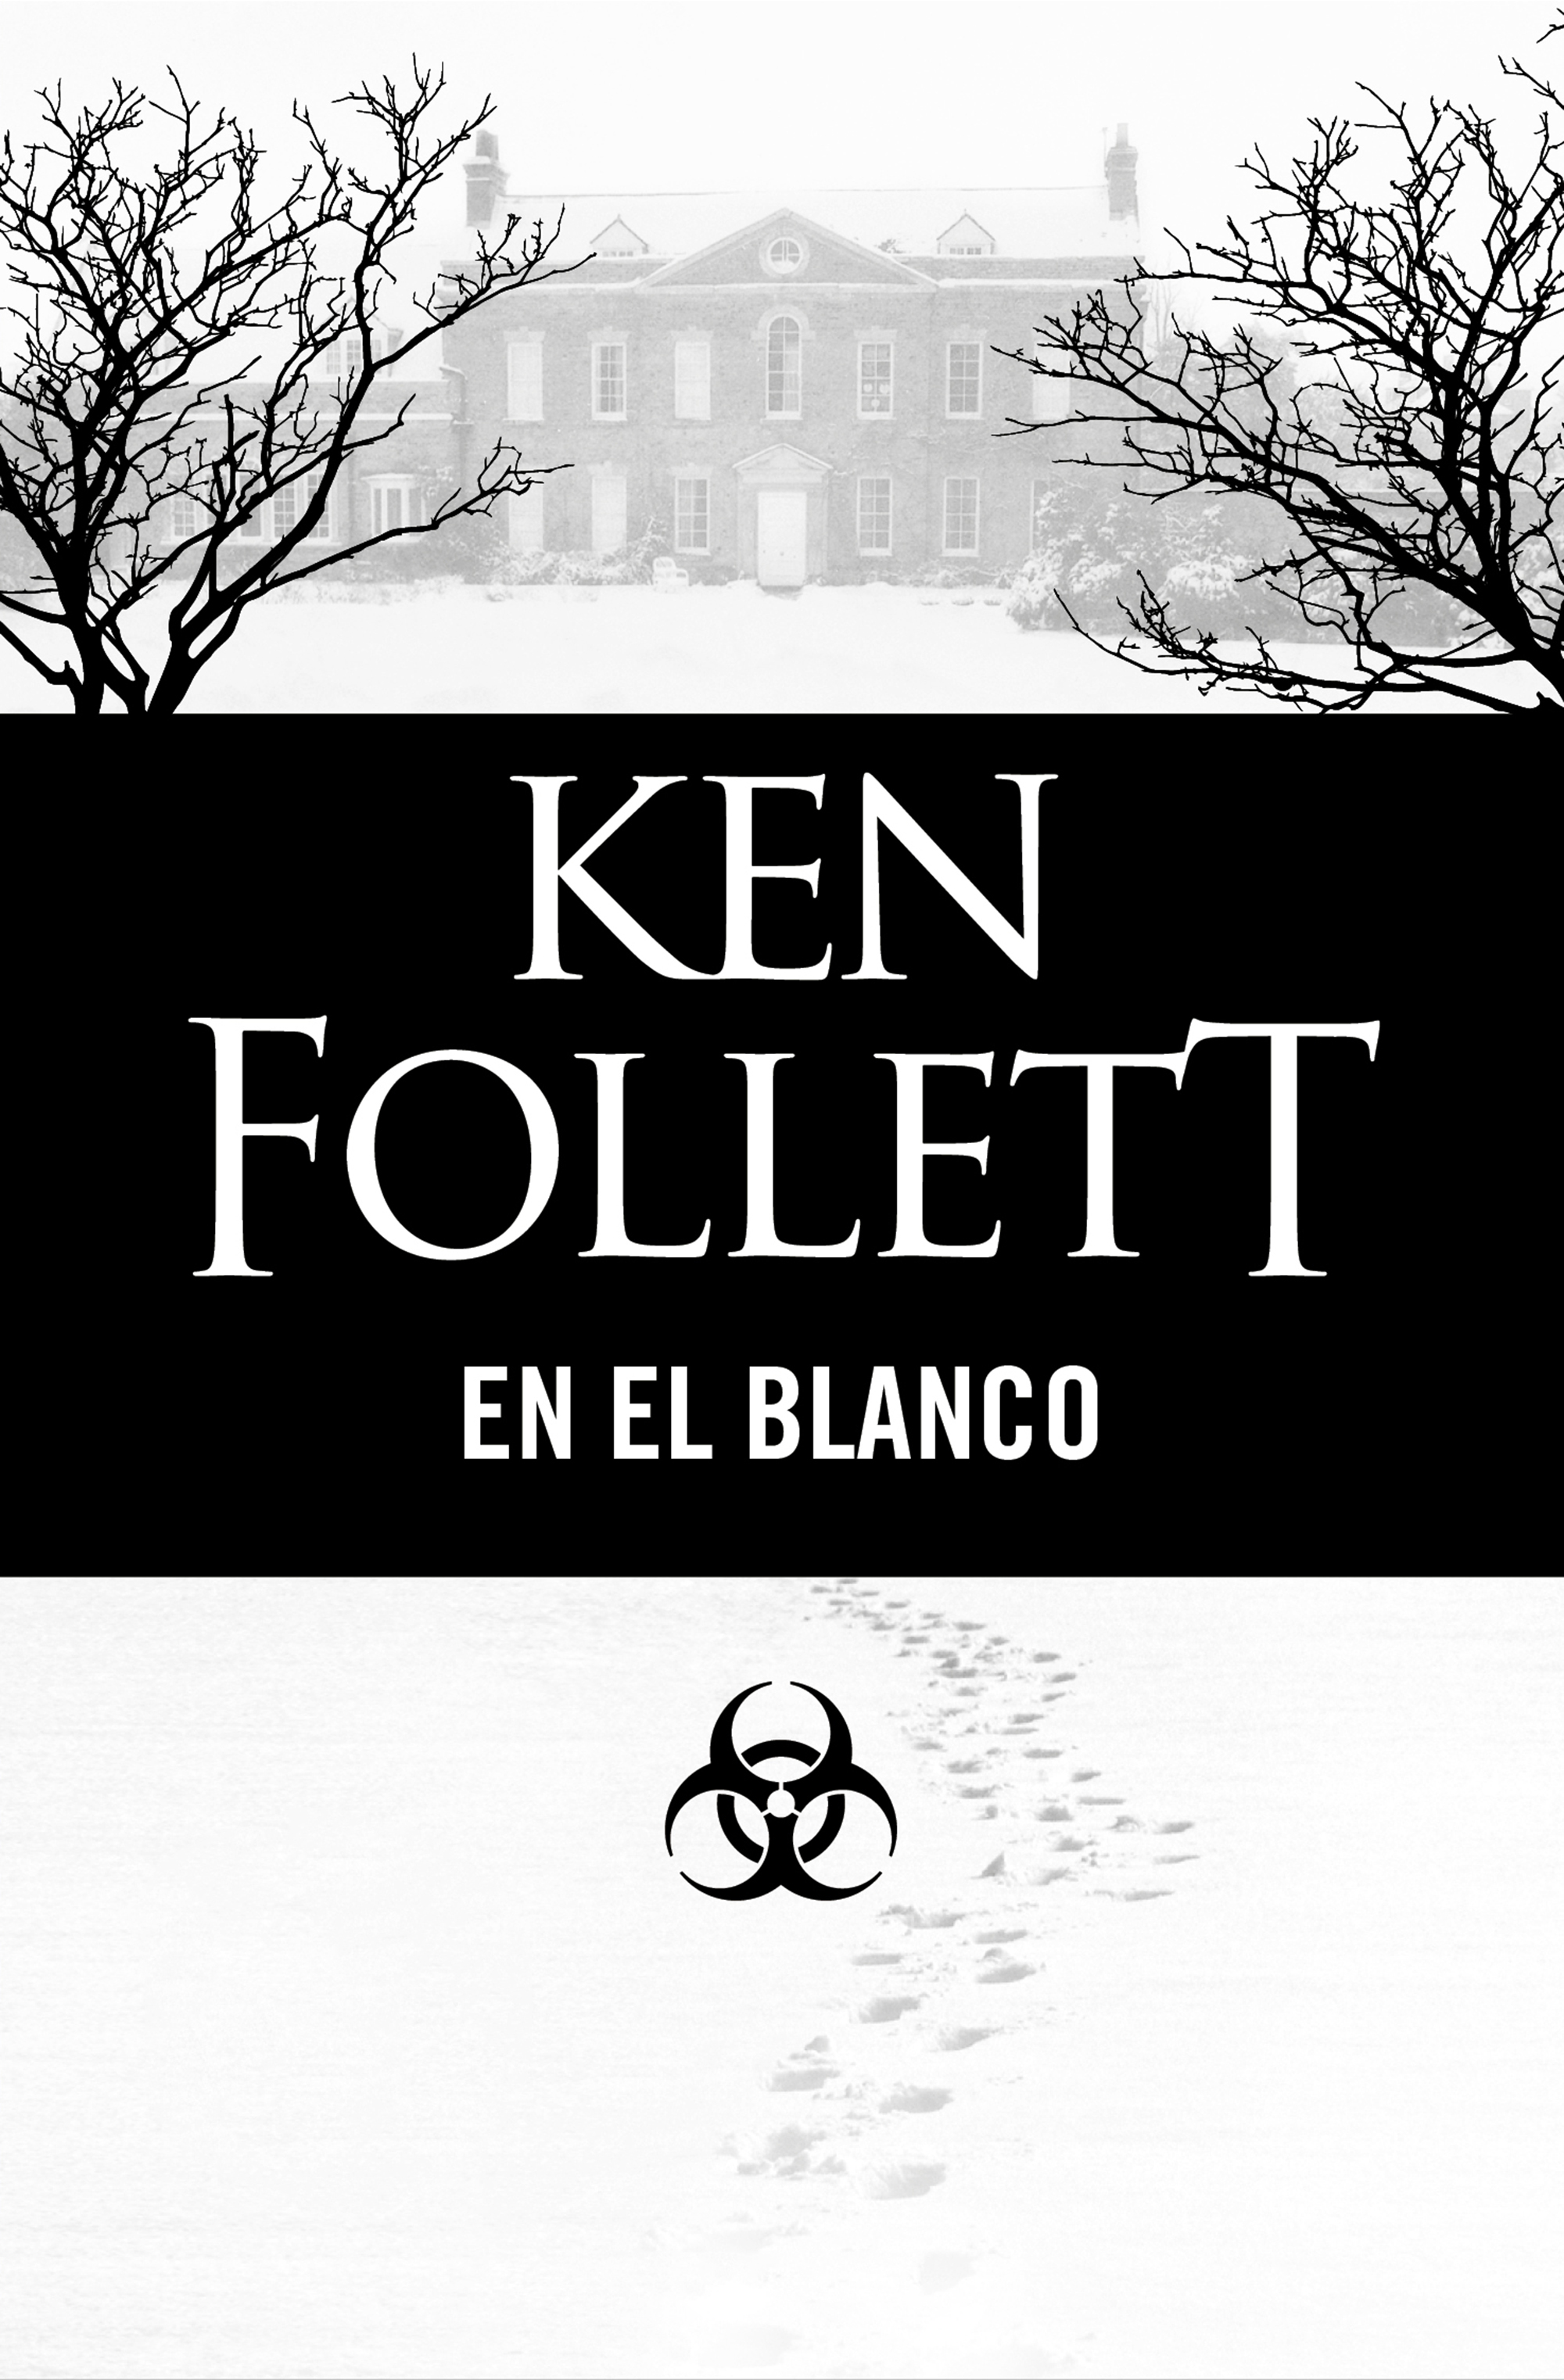 Descargar Libros Ken Follet Artemis Edinter Libros